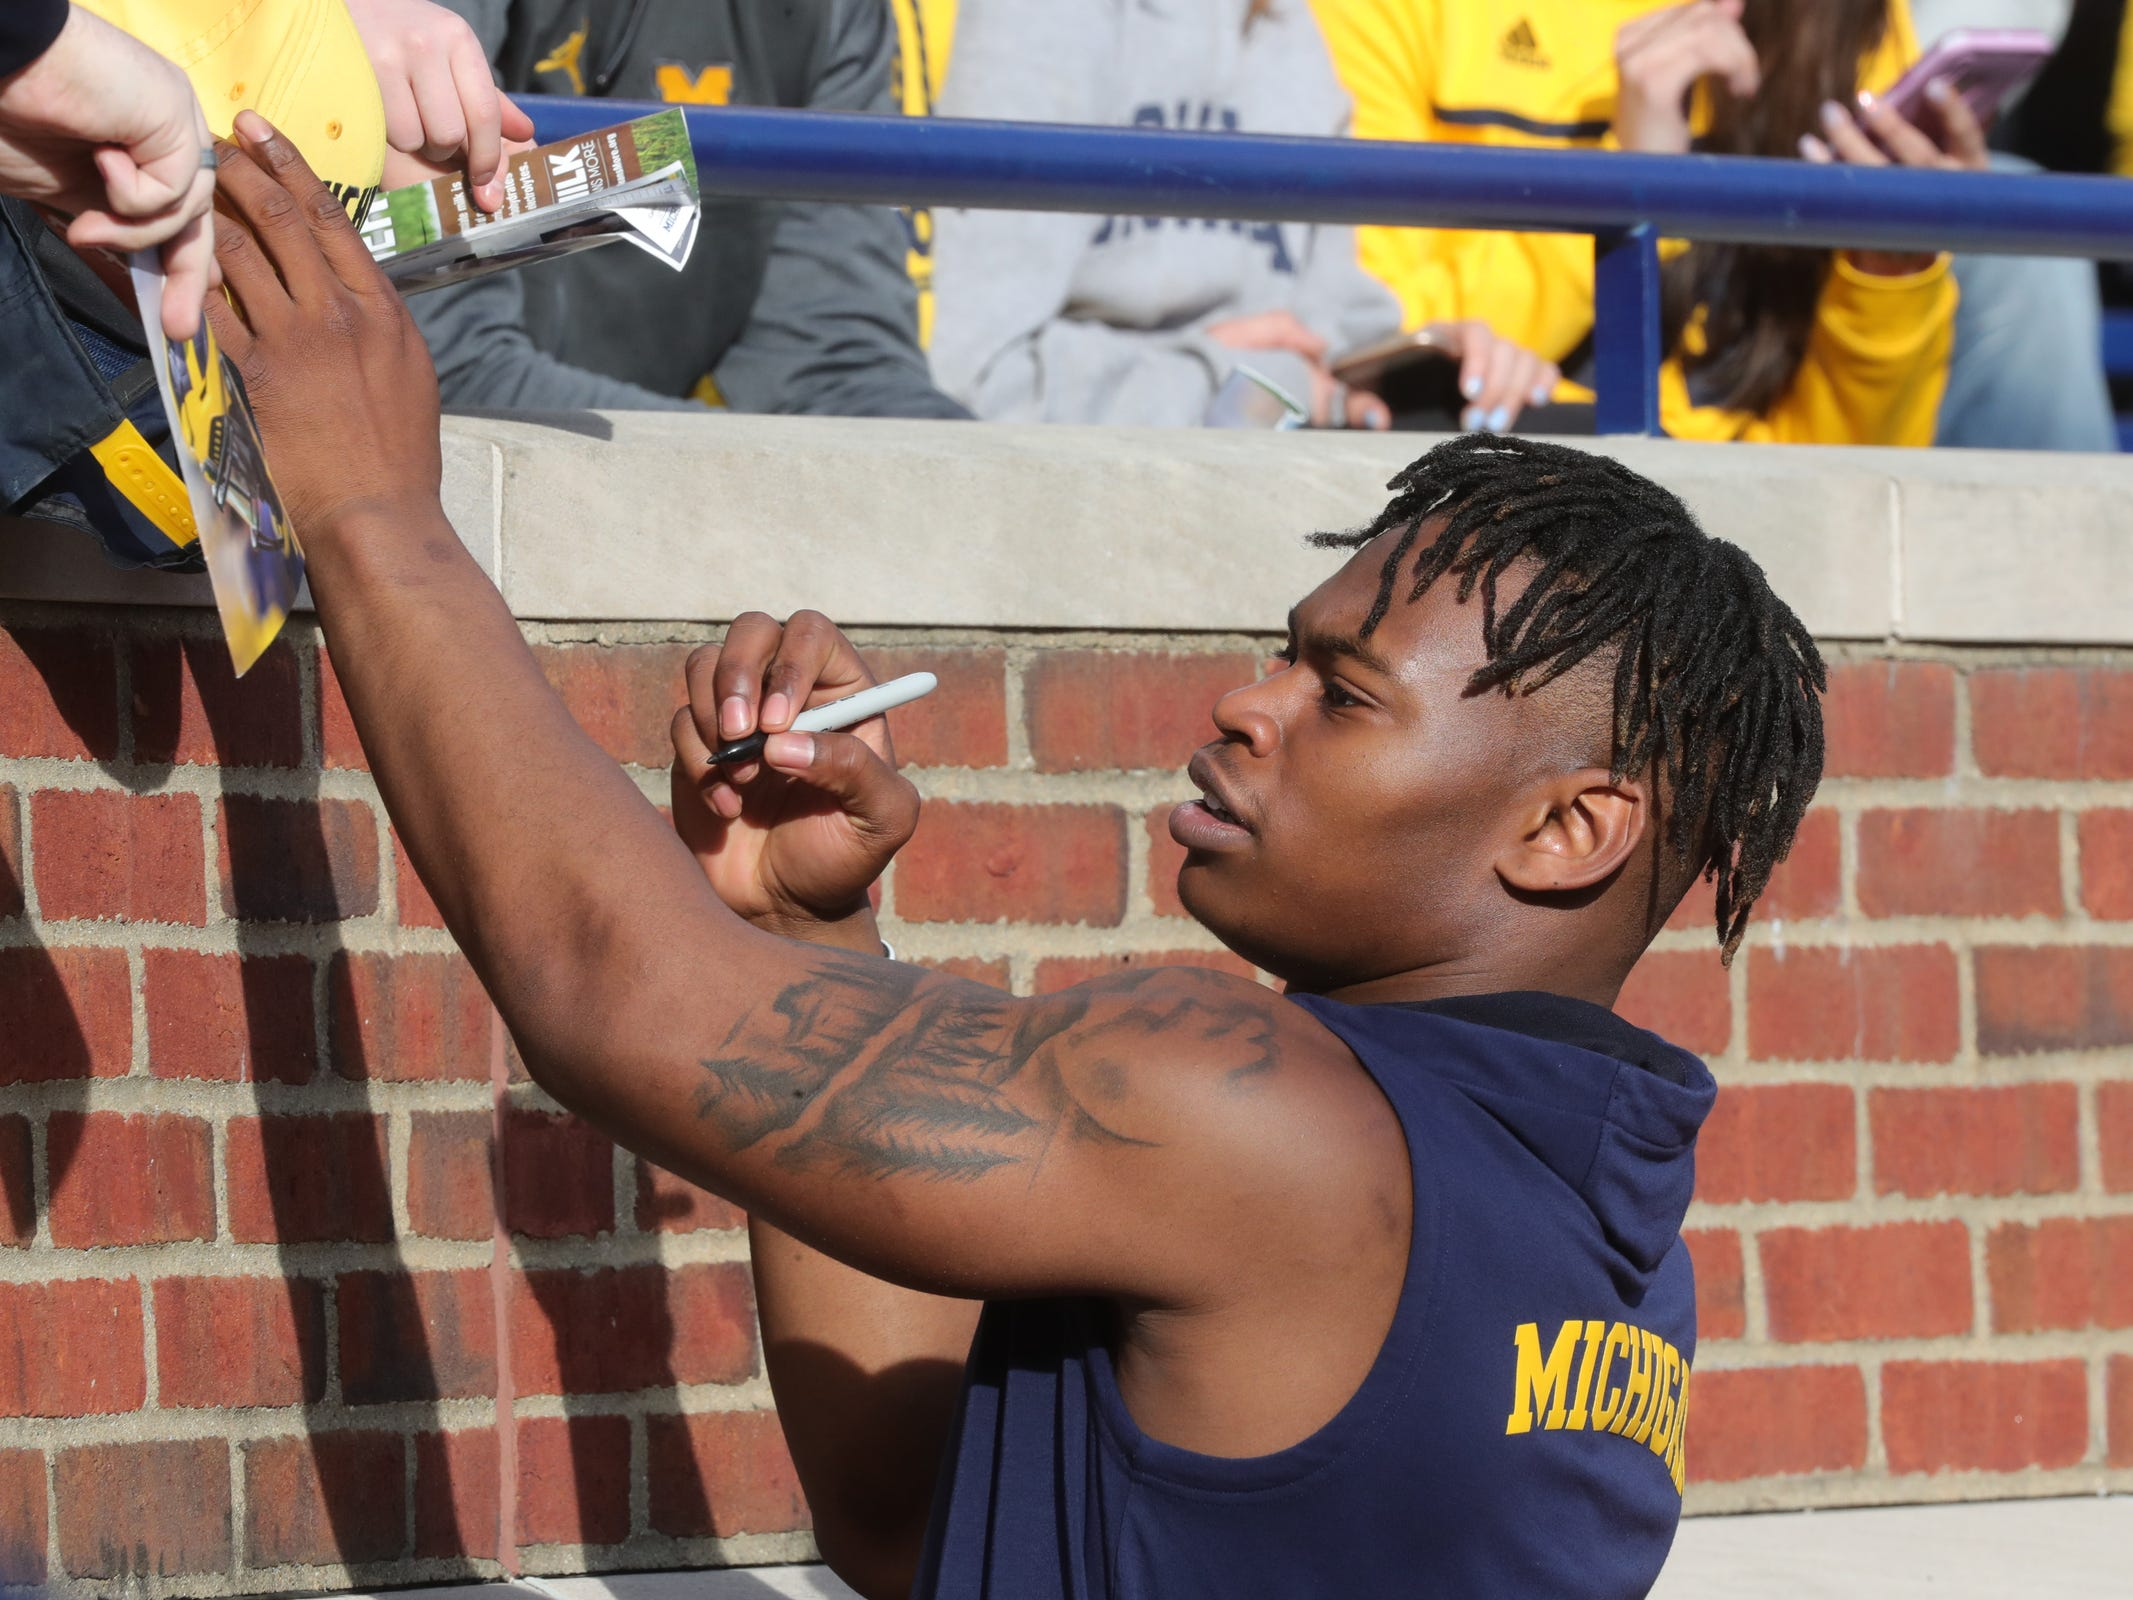 Michigan running back Christian Turner signs autographs during the spring game Saturday, April 13, 2019 at Michigan Stadium in Ann Arbor.